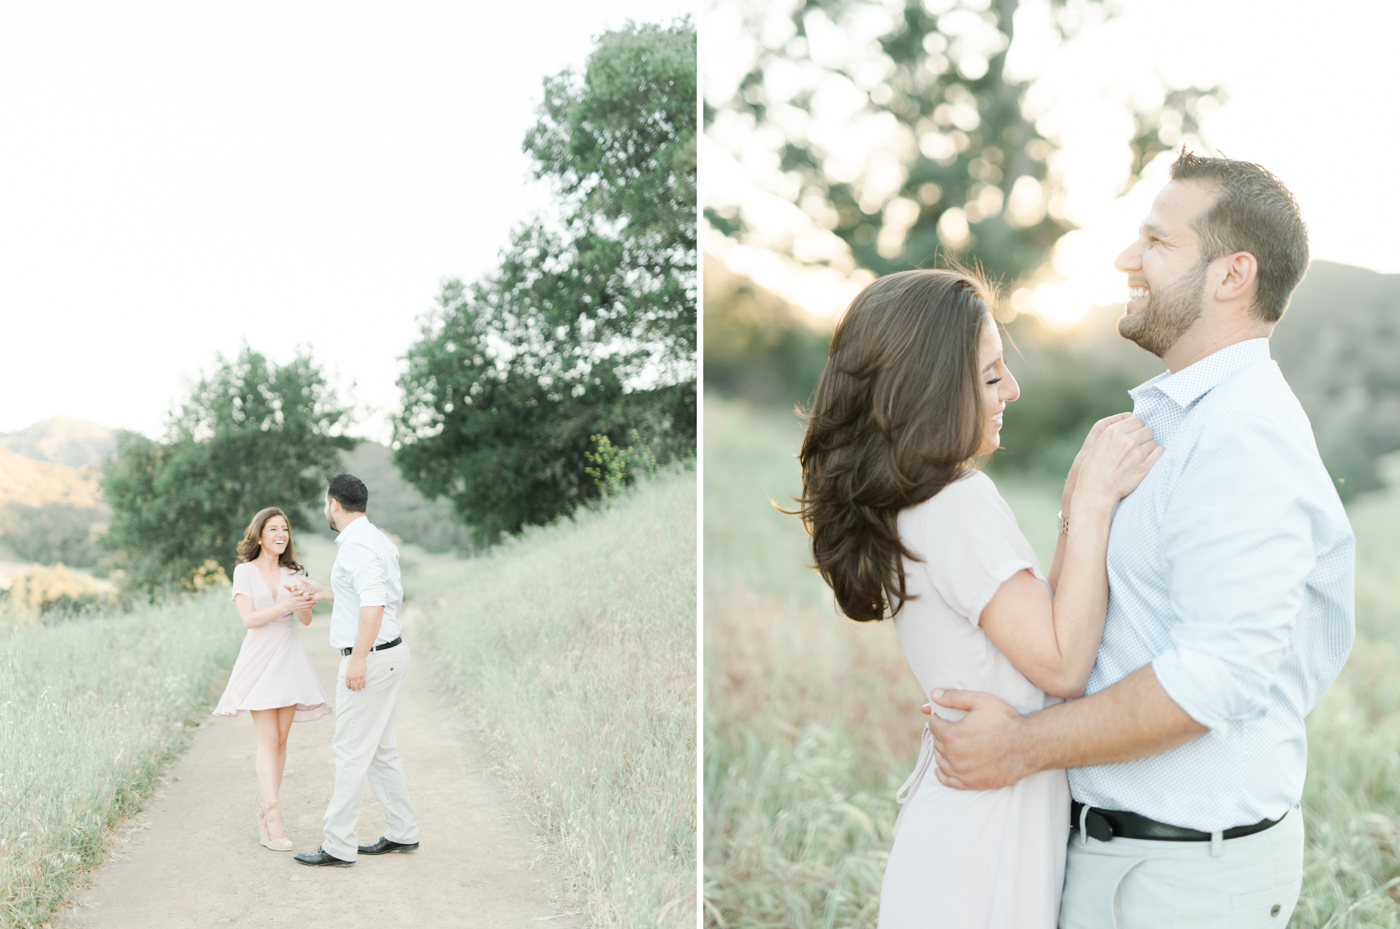 a&a_malibu_creek_state_park_engagement_session_los_angeles_fine_art_wedding_photographer-4.jpg